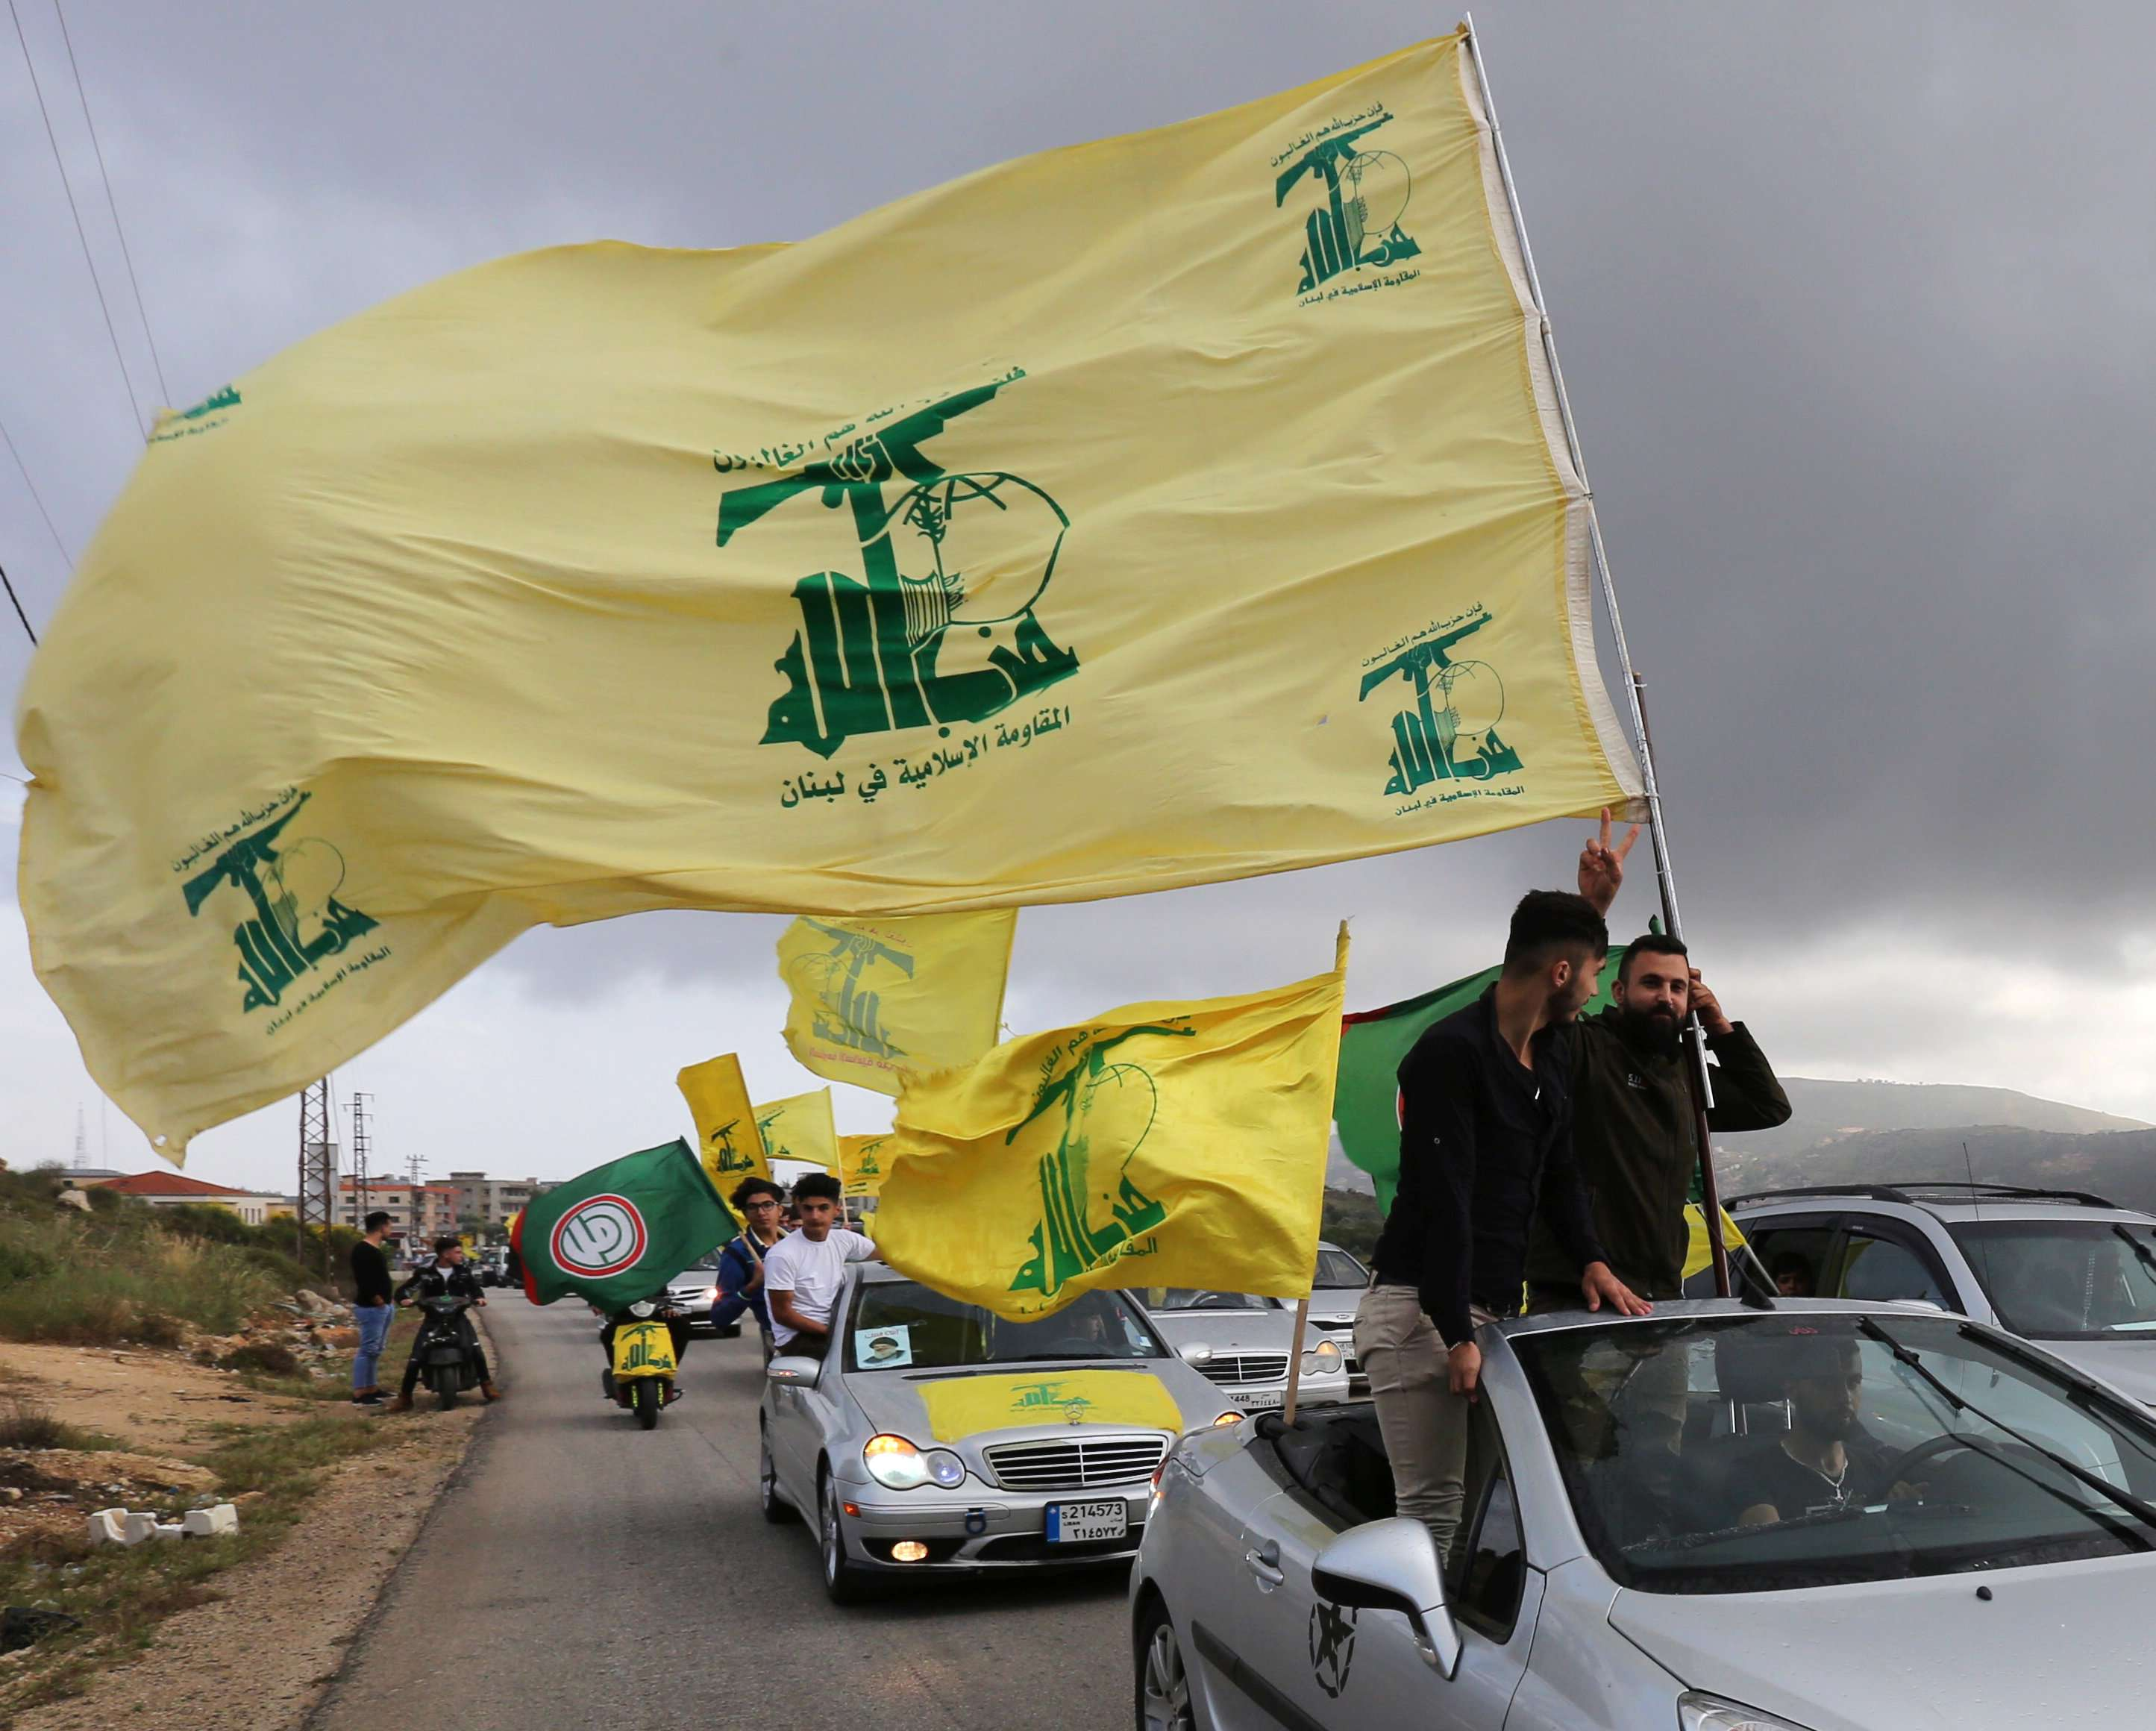 A supporter of Lebanon's Hezbollah gestures as he holds a Hezbollah flag in Marjayoun, on May 7. (Reuters)